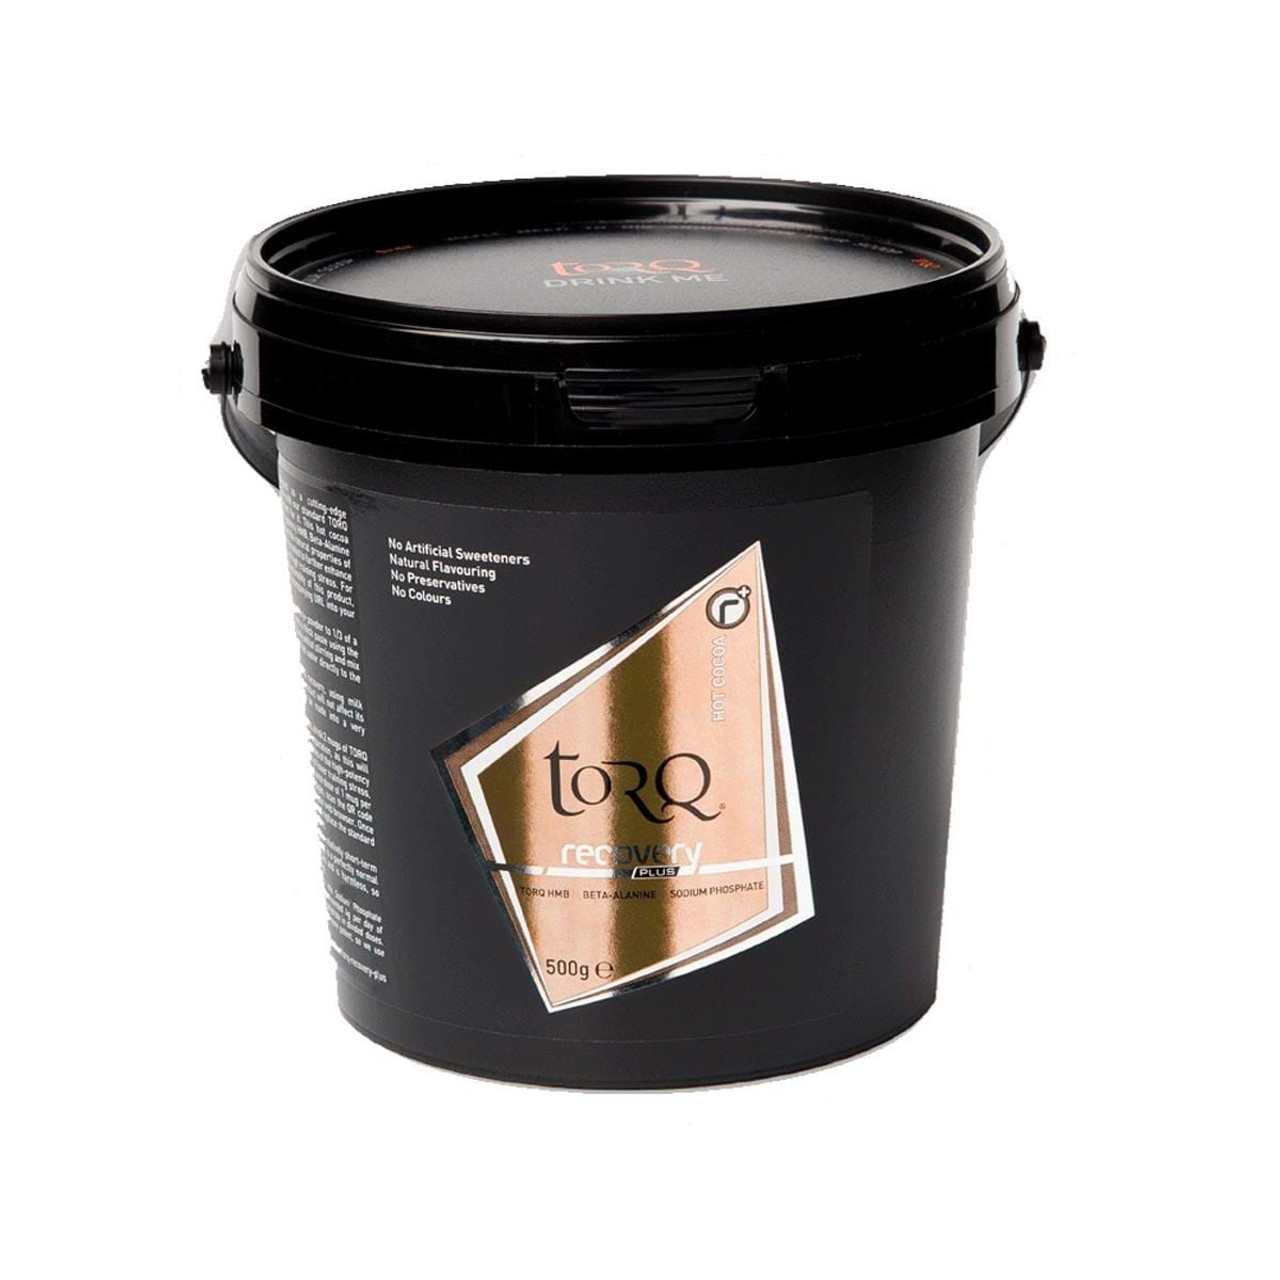 Torq Recovery Plus Hot Cocoa 500g